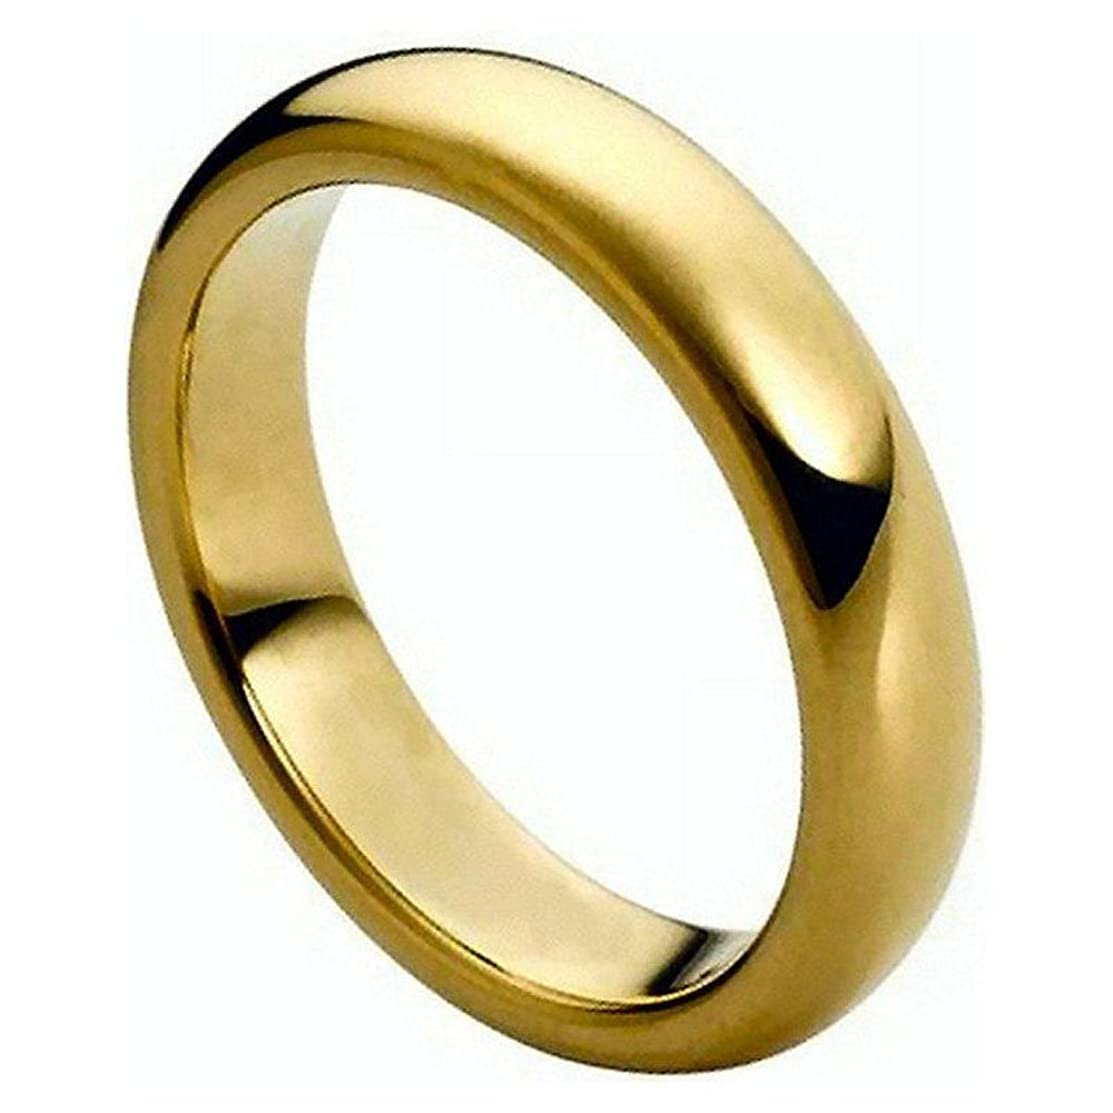 3mm 316L Stainless Steel 18k Plated Gold Polish Dome COMFORT FIT Wedding Band Ring Size 4-13